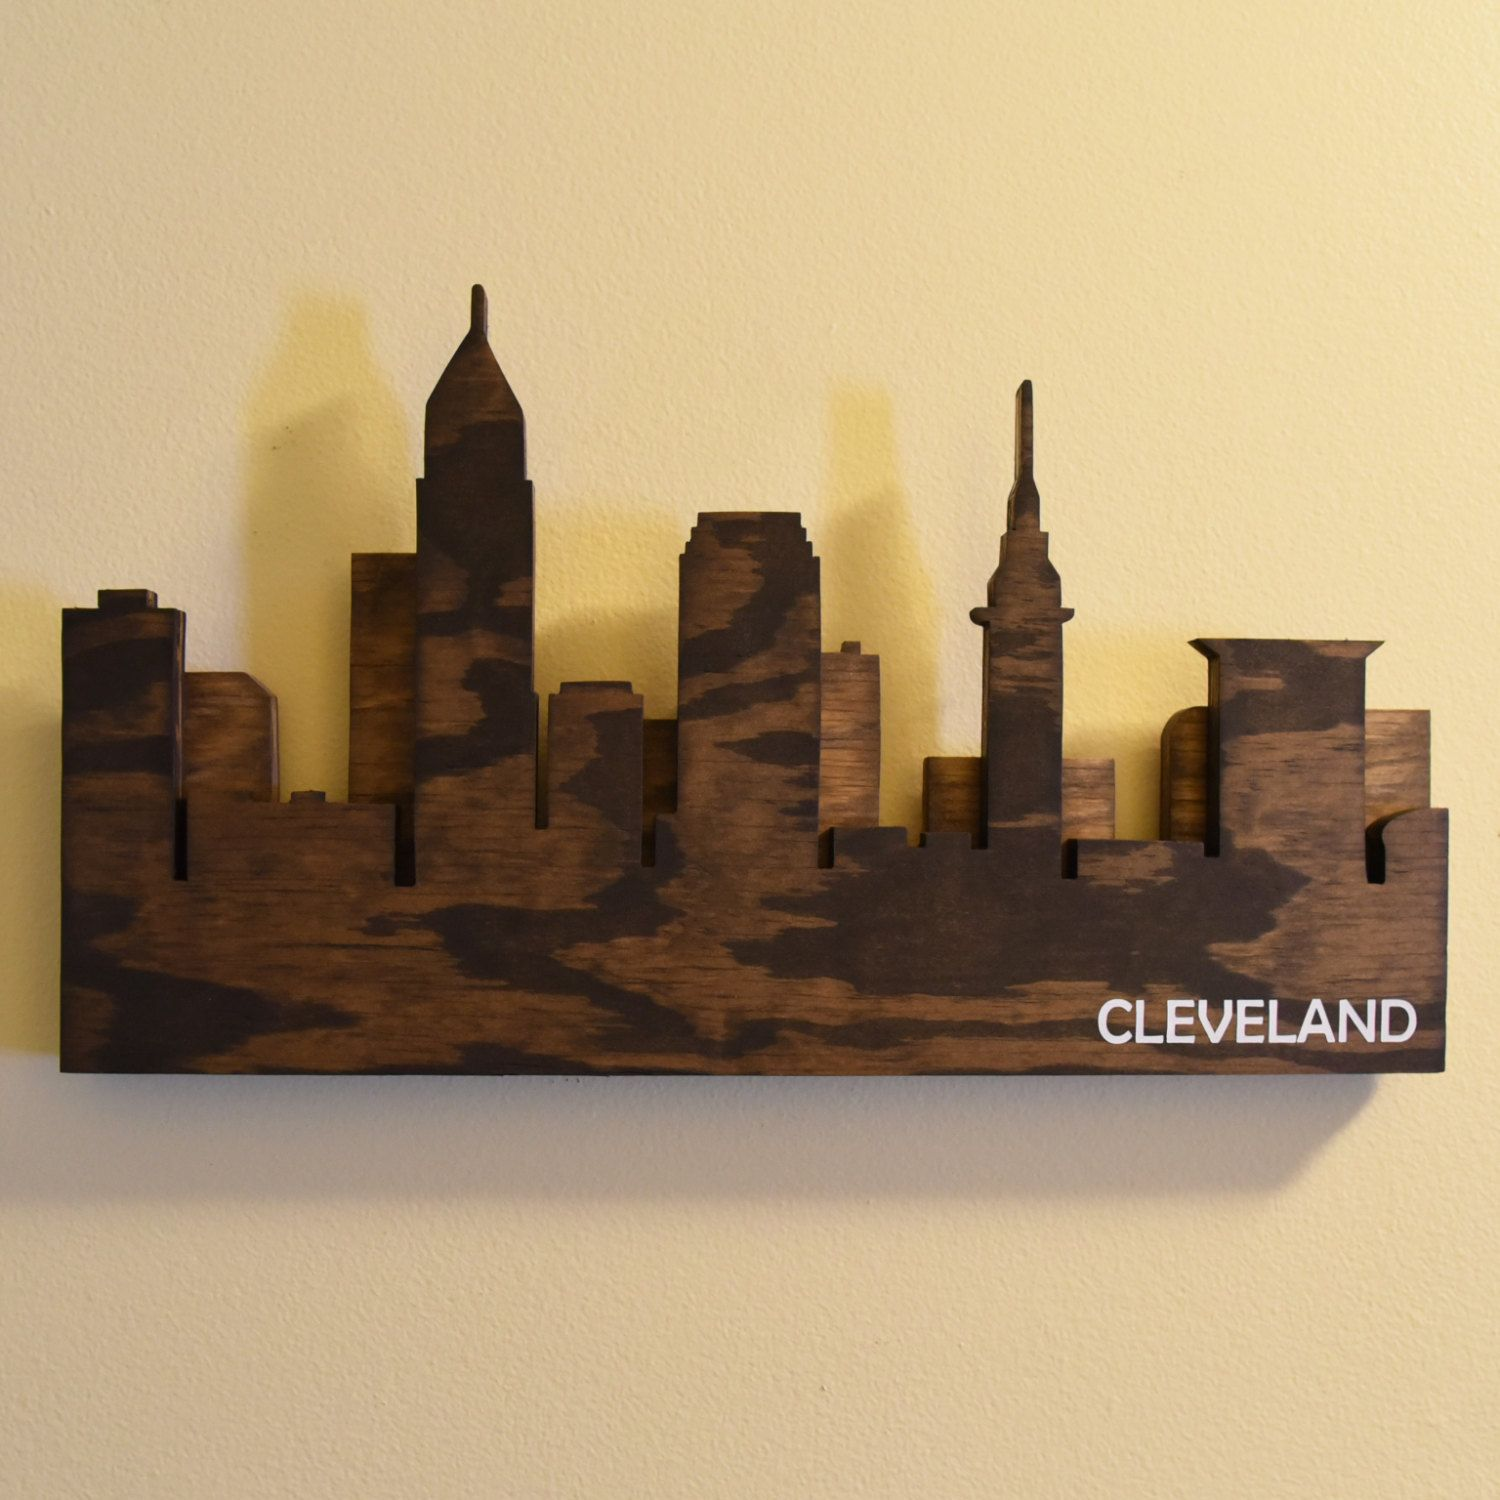 Cleveland Skyline Wall Art | Picture hangers, Clamp and Hanger